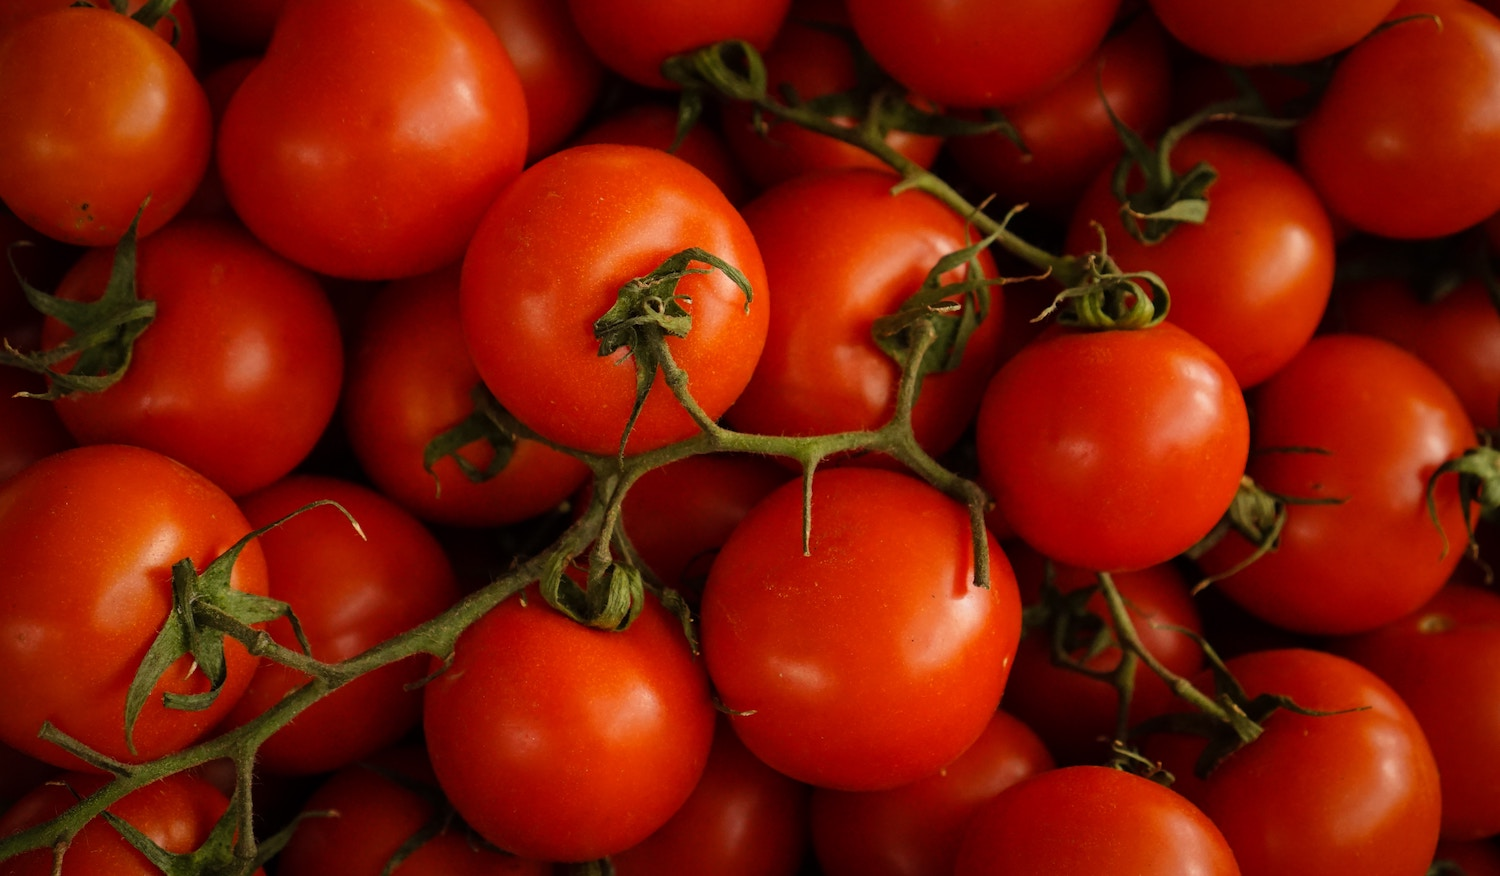 From Tomato Vine to Tomato Sauce: A Look into the Visibility Traceability Provides